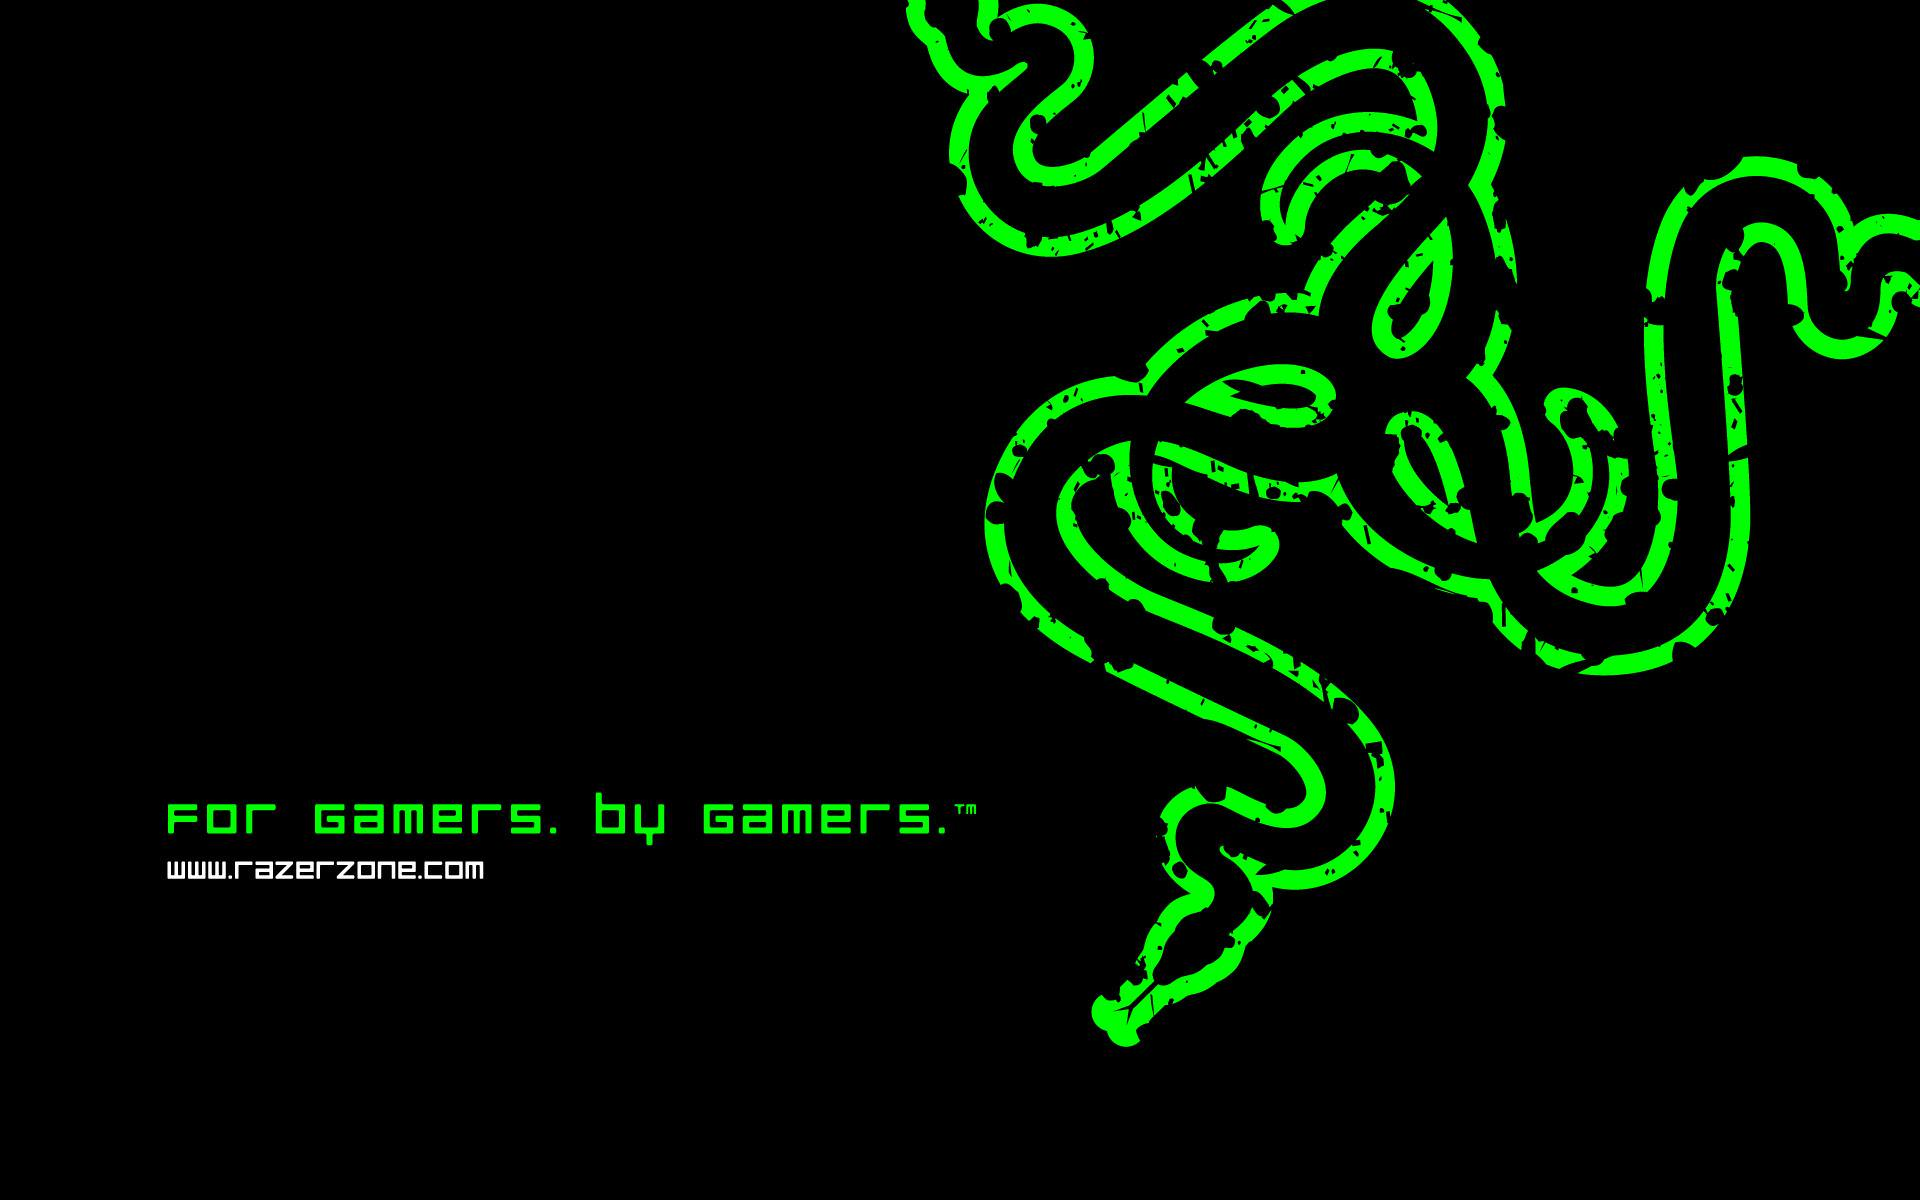 Razer's first smartphone might have 8GB of RAM